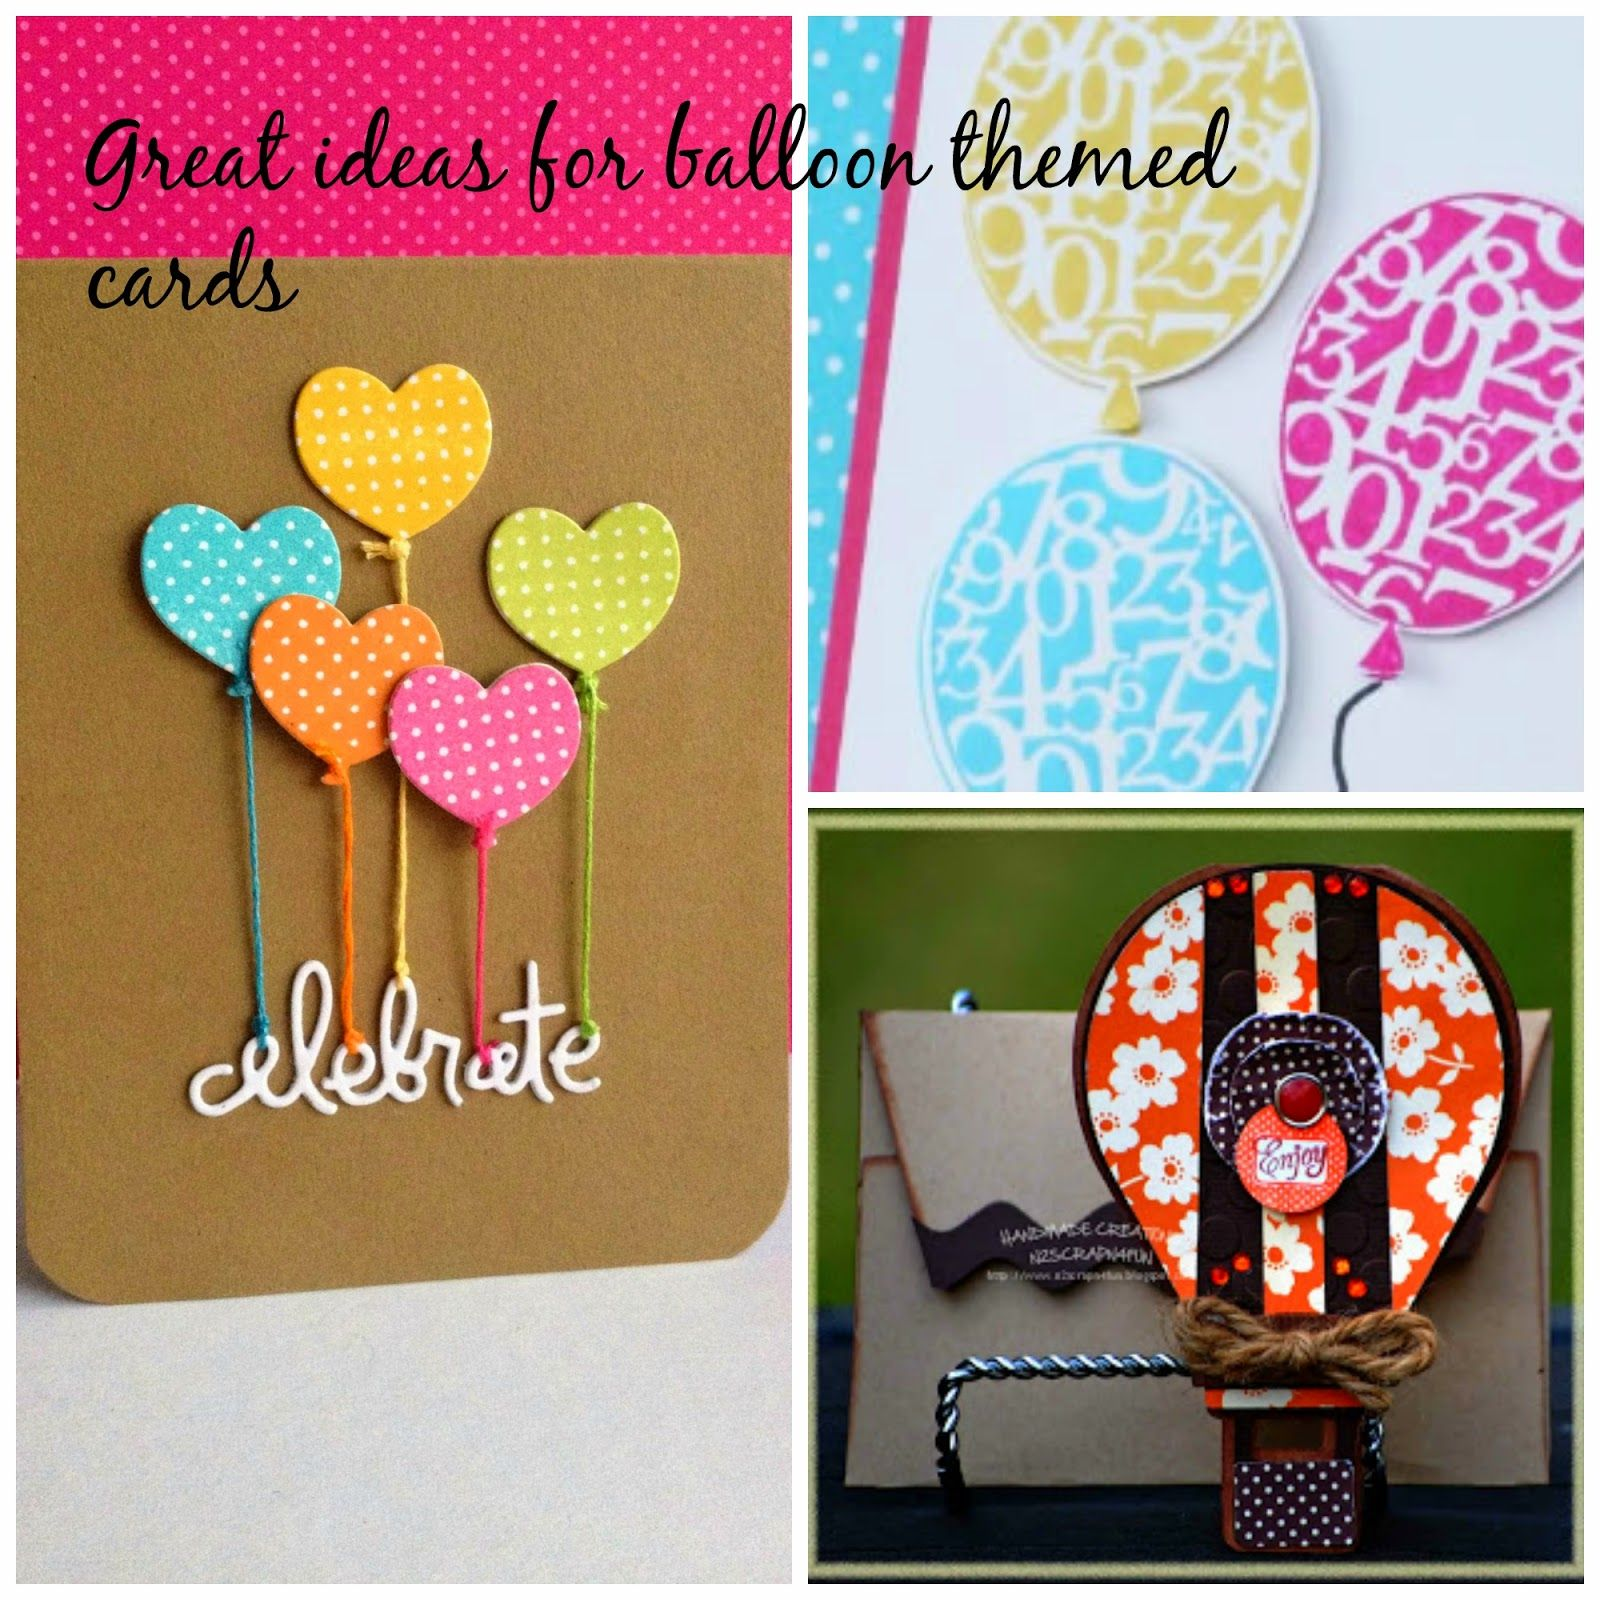 Photo Collage Greeting Cards printable wedding invitations online – Birthday Card Collage